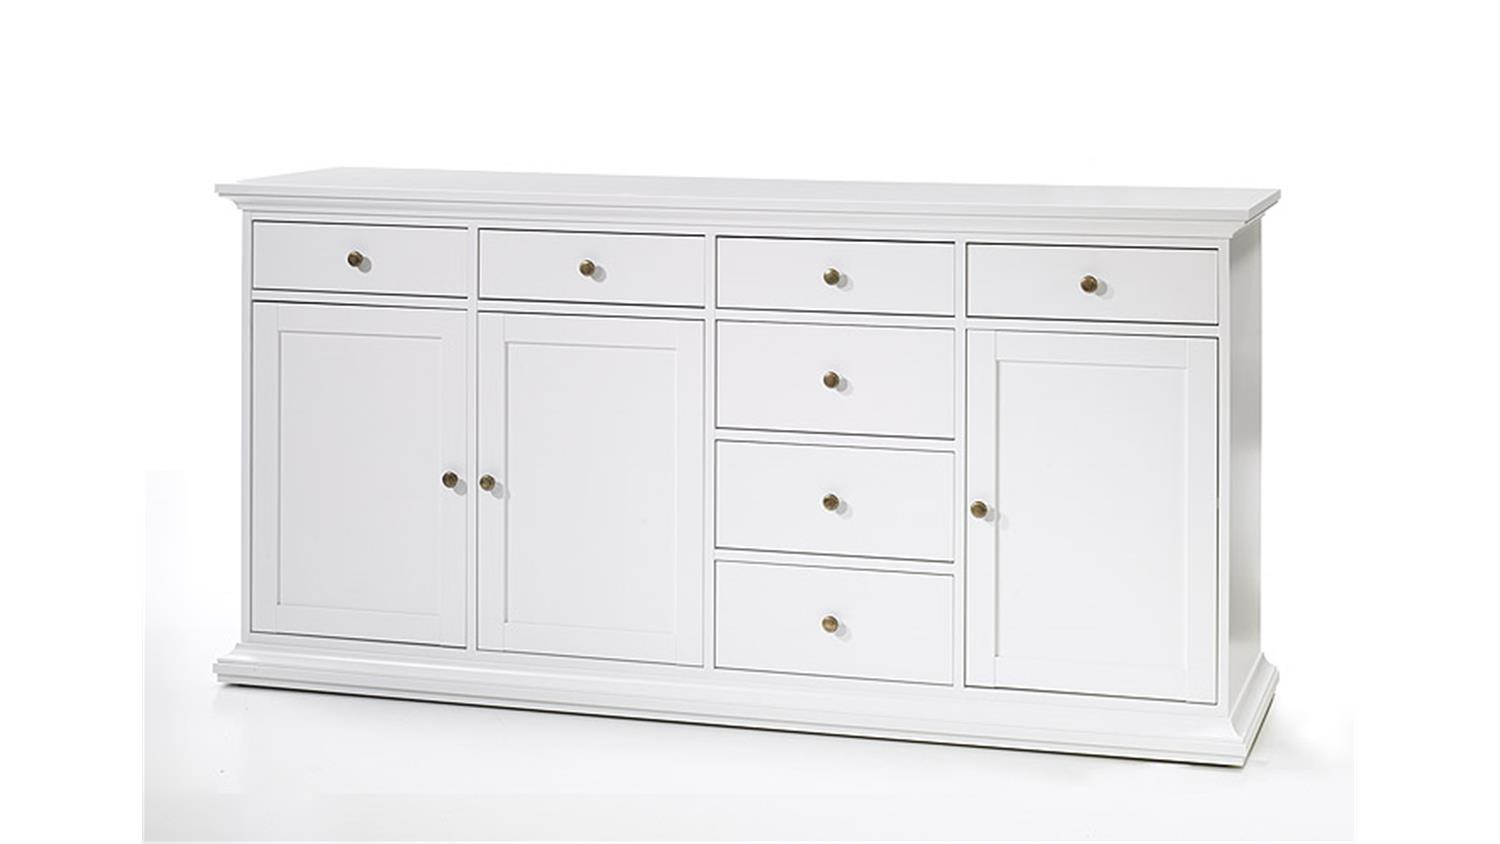 Landhausstil Kommode Weiß Sideboard 3 Paris Kommode In Weiß Dekor Landhausstil 3 Türig